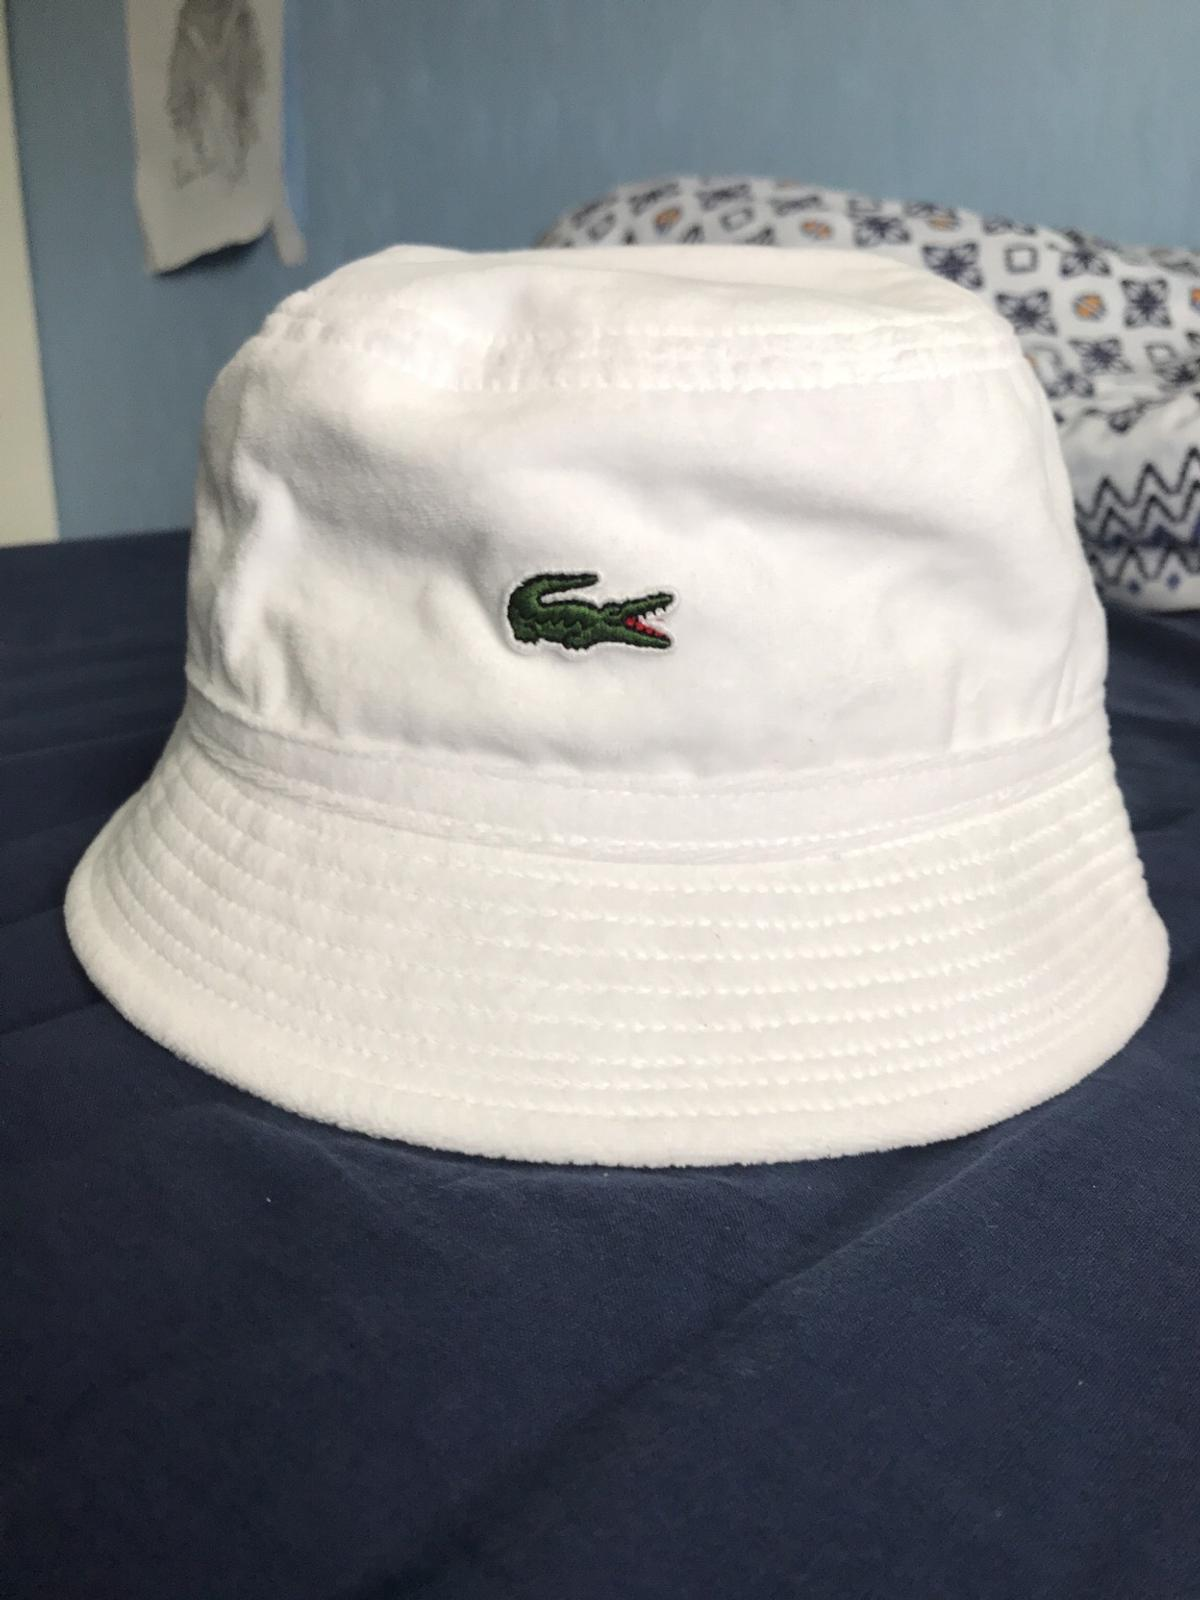 8eac2f912 Supreme x Lacoste bucket hat in 64430 Torshälla for SEK 900.00 for ...